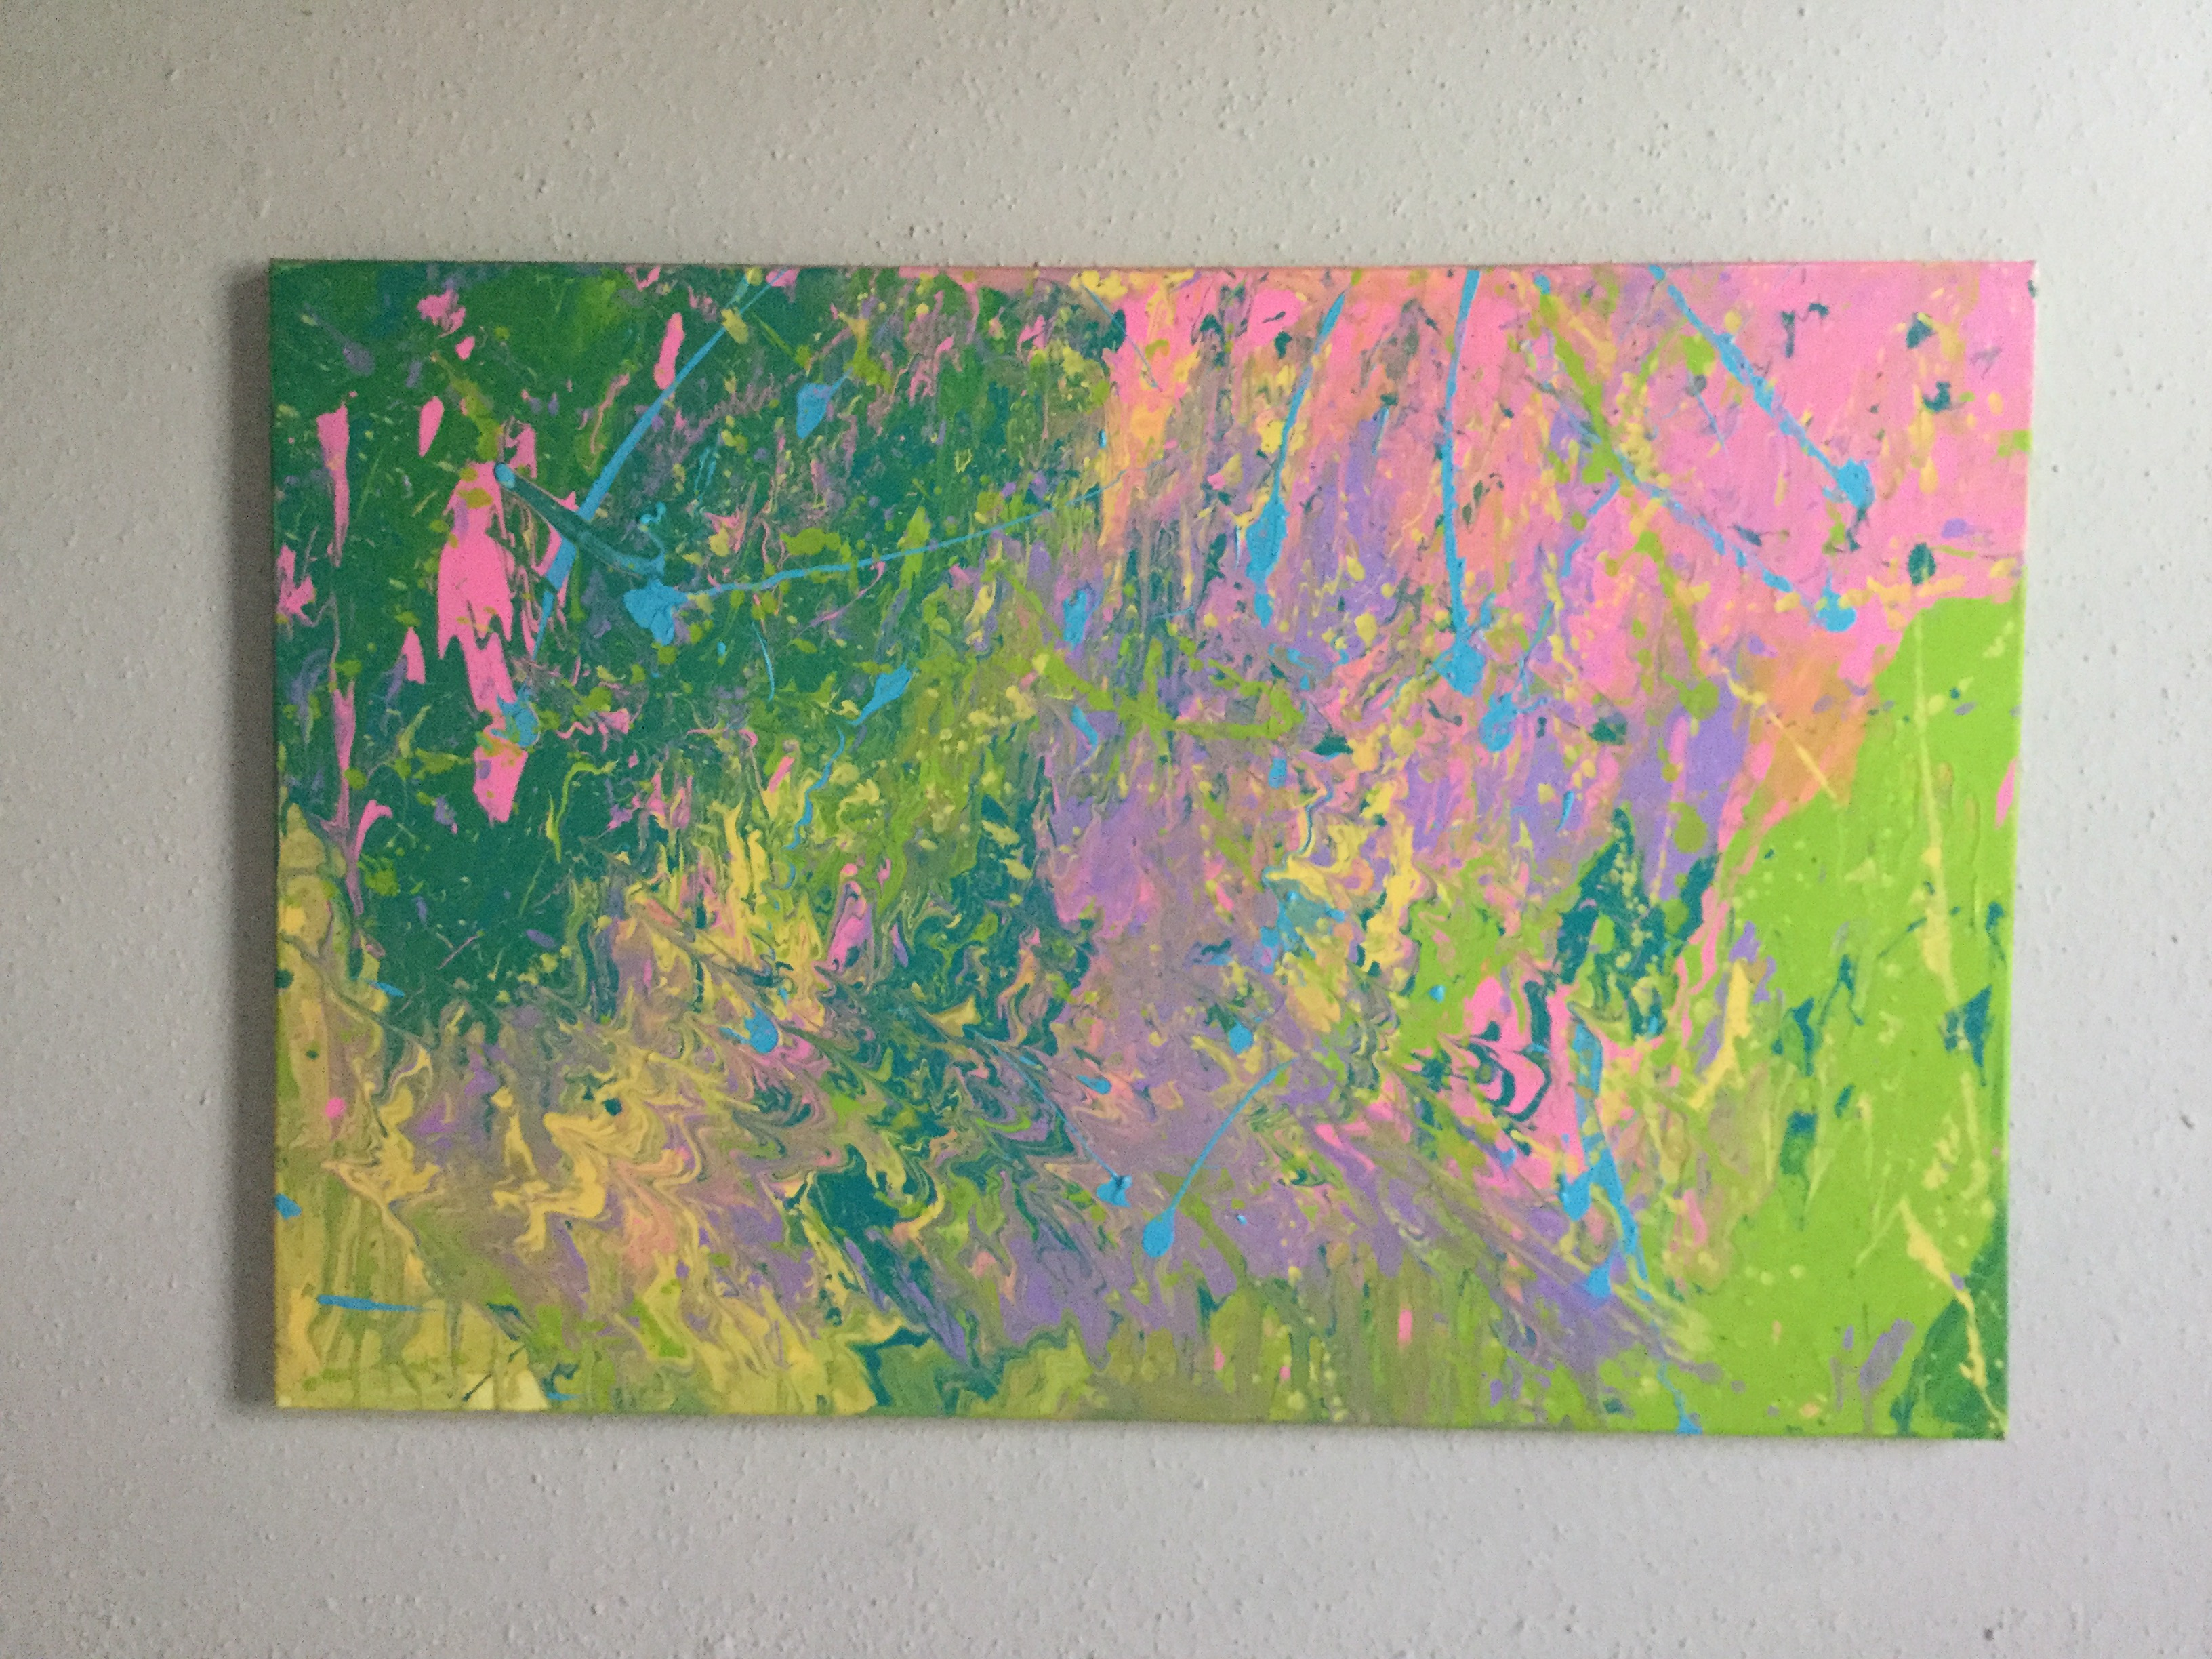 Twisted Candy artwork by Shylex Shylex - art listed for sale on Artplode